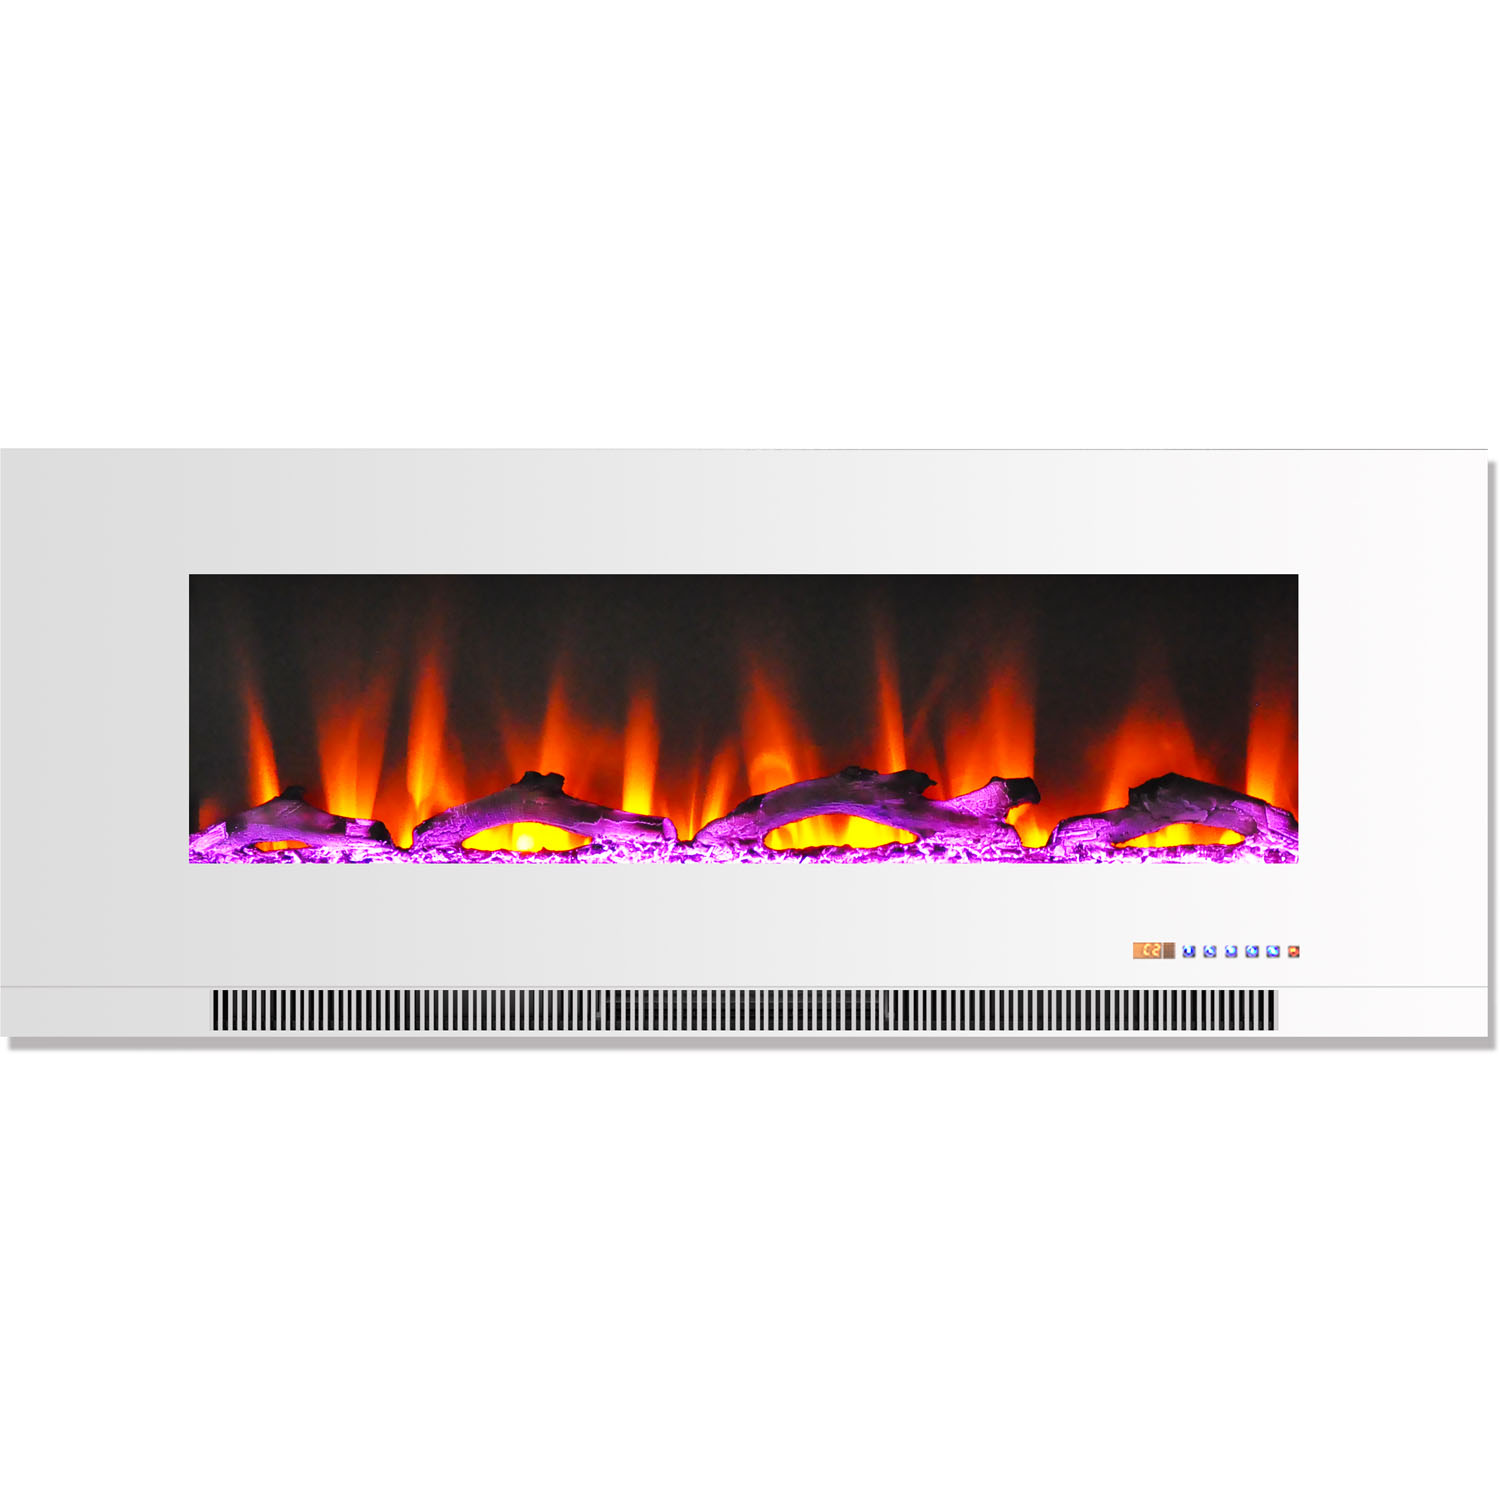 "Cambridge 50"" Wall-Mount Electric Fireplace Heater with Multi-Color LED Flames and... by Cambridge"